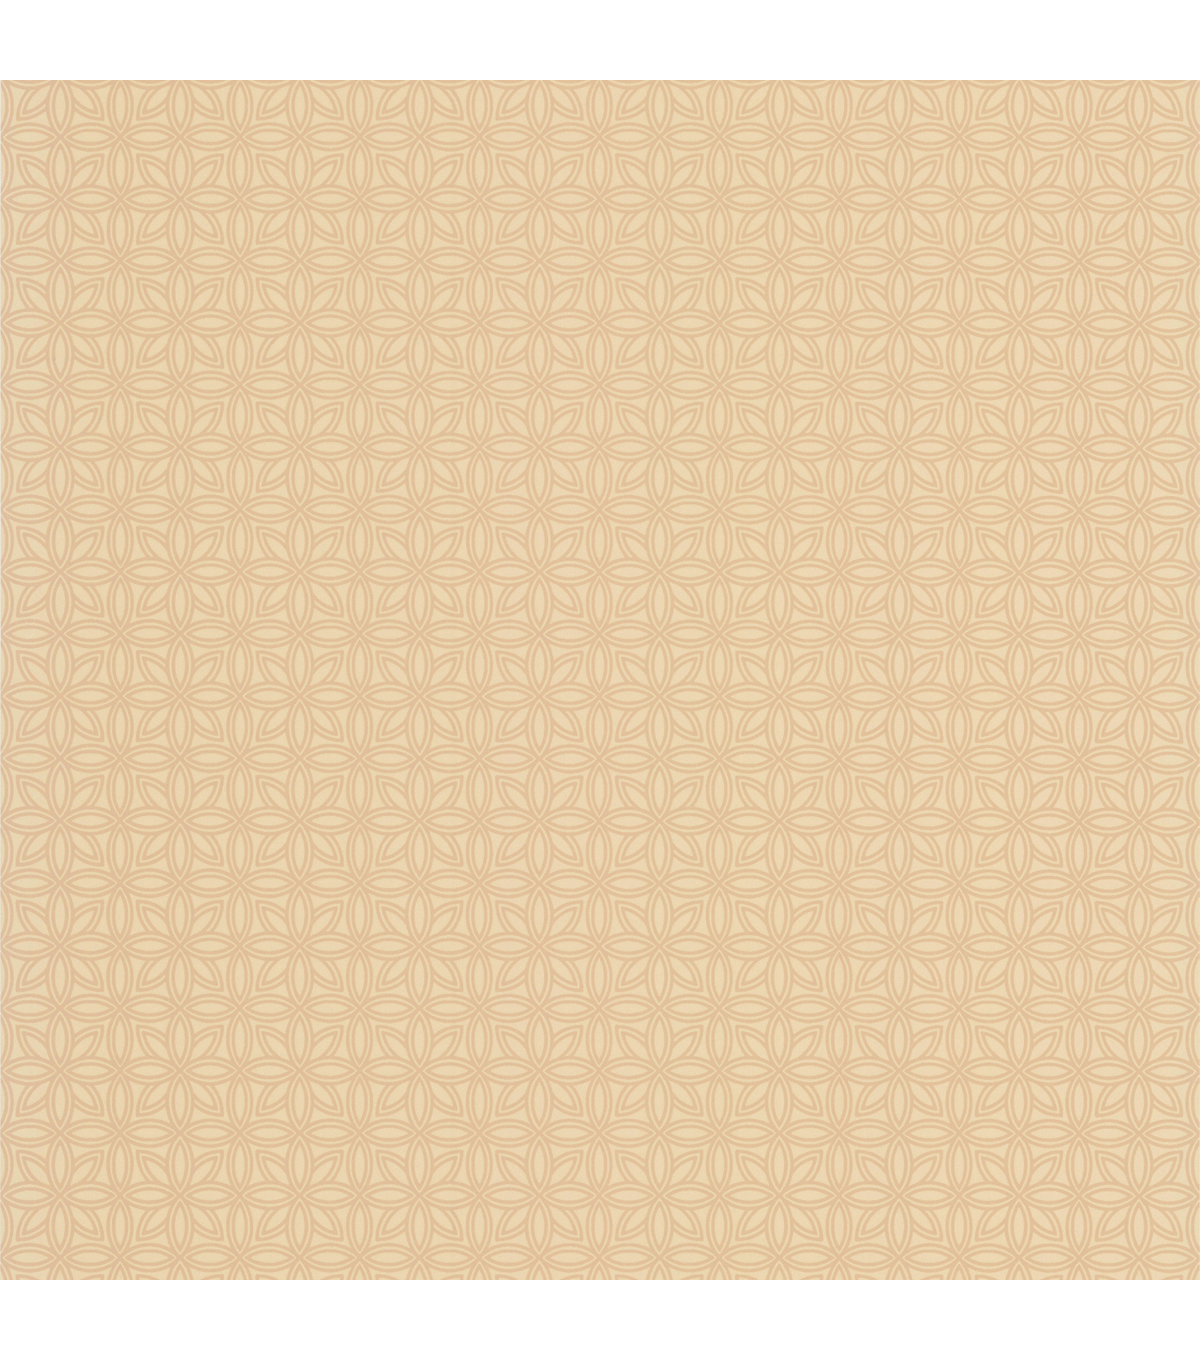 Tangine Gold Mini Moroccan Geometric Wallpaper Sample